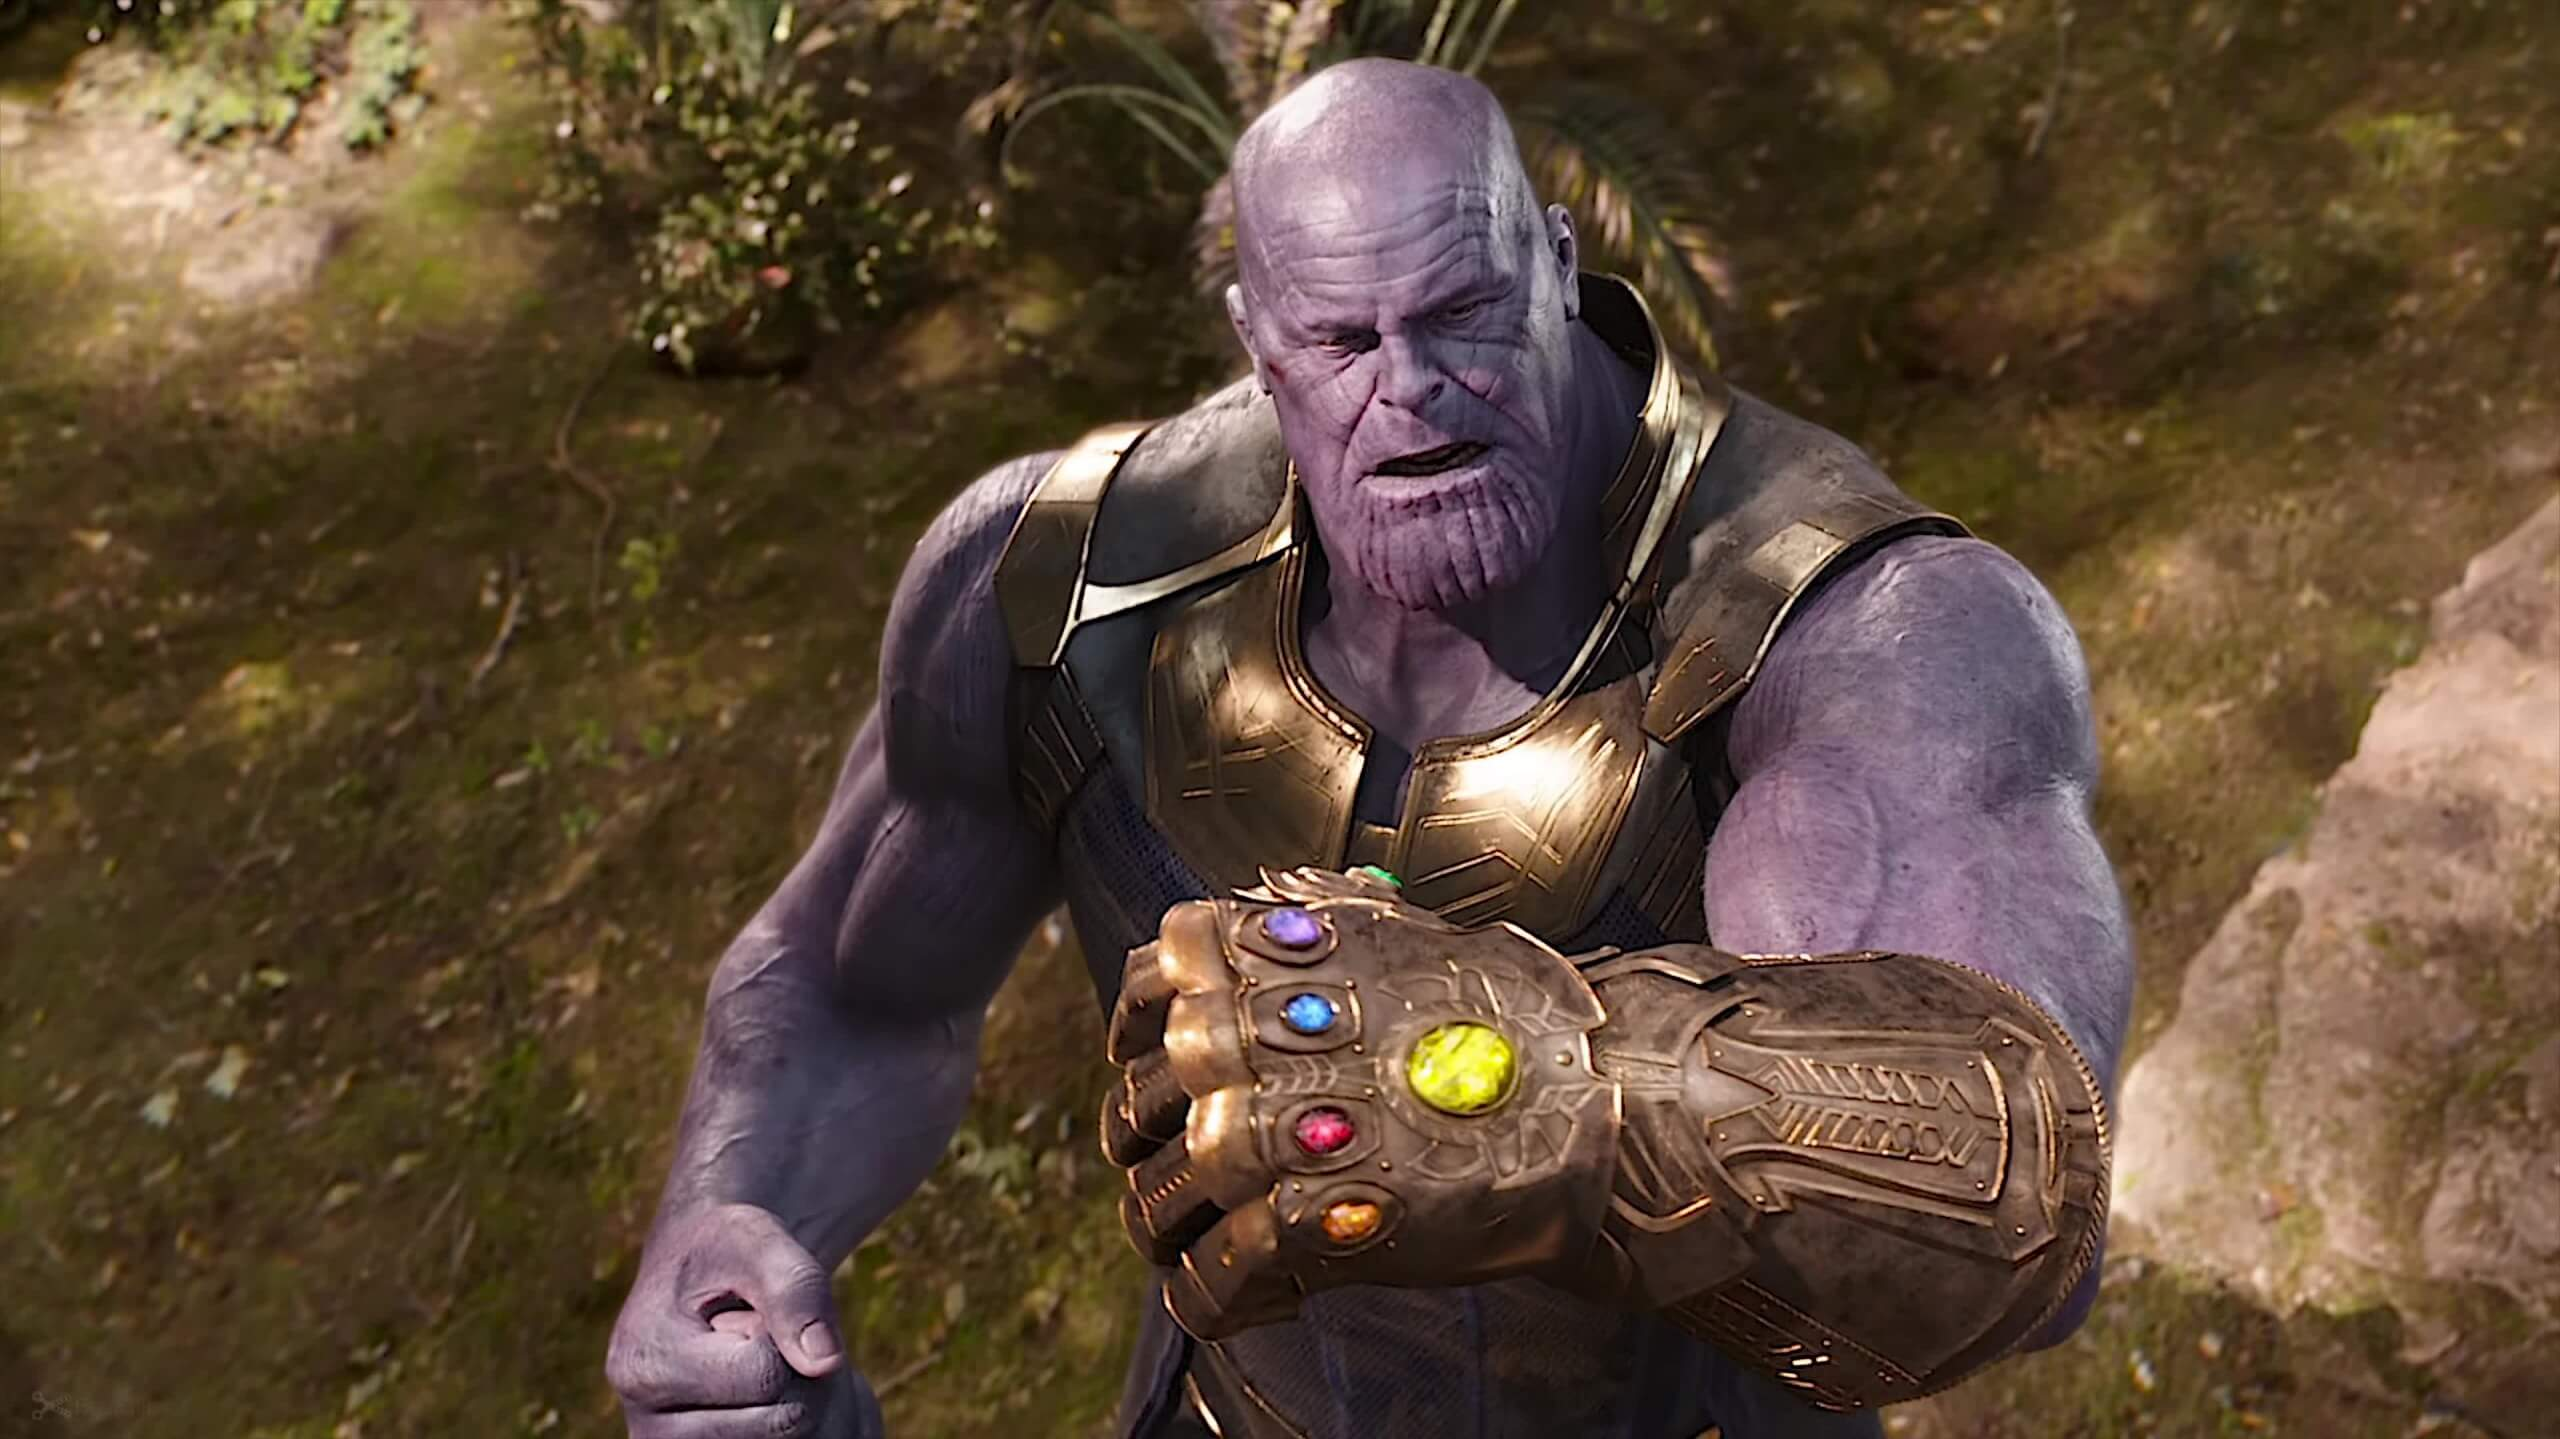 Even Google's search results aren't safe from Thanos